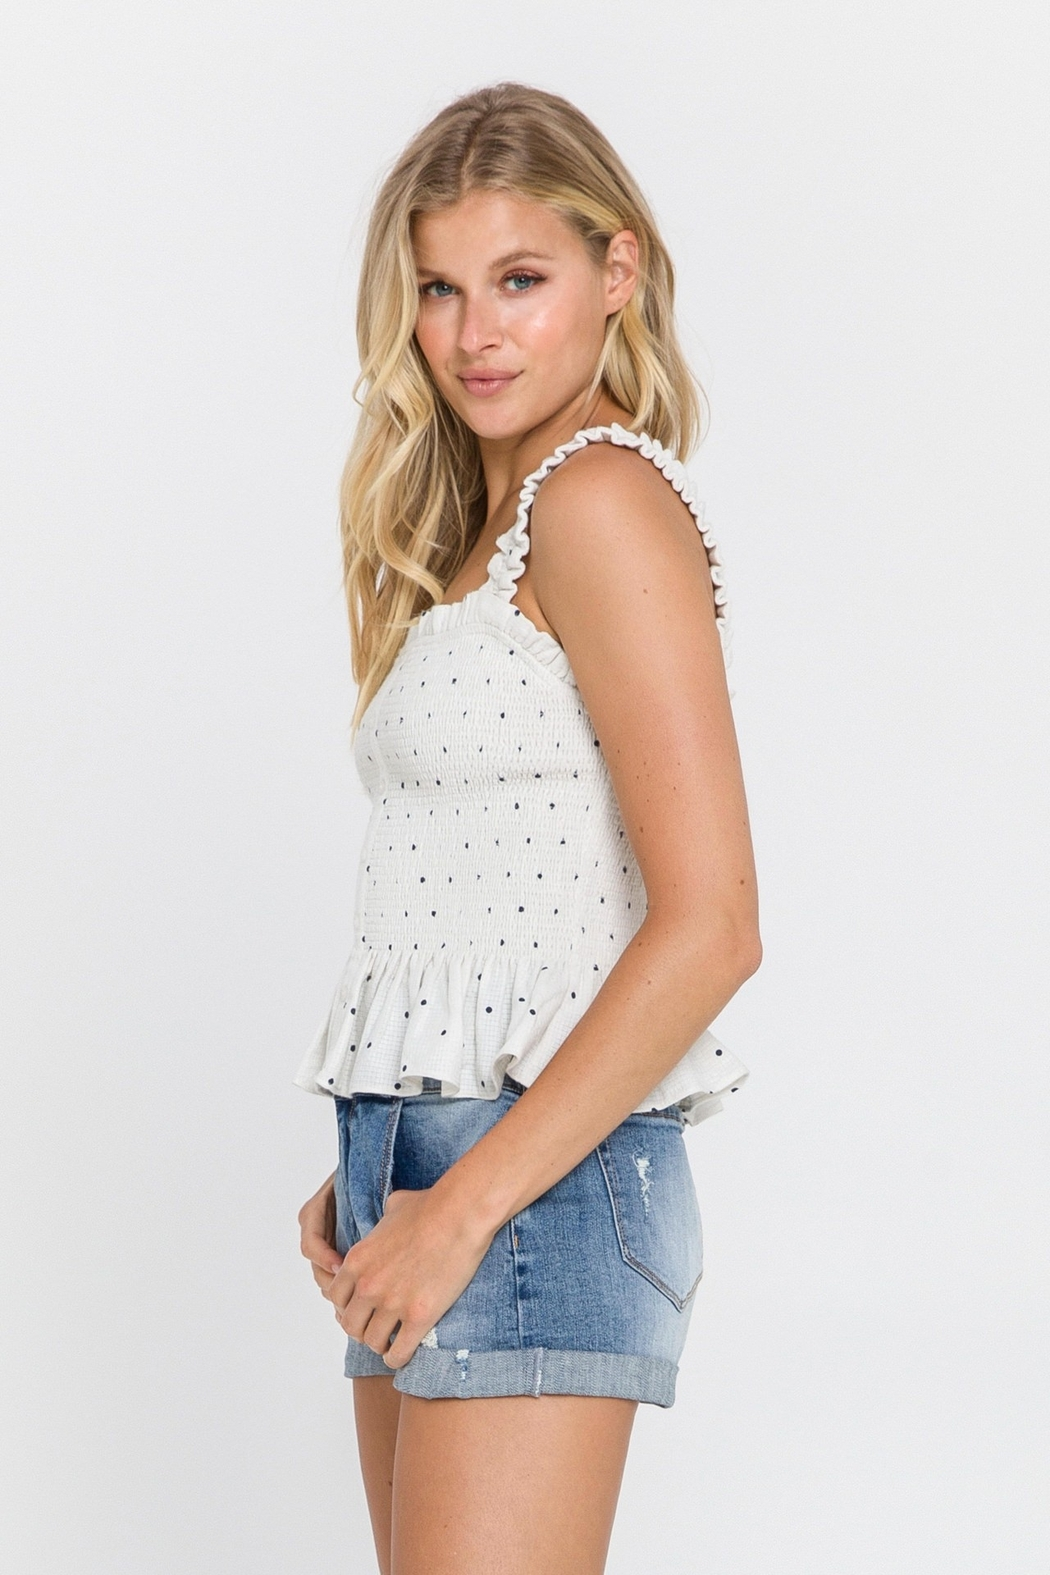 FREE THE ROSES Polka Dot Smocked Top - Front Full Image